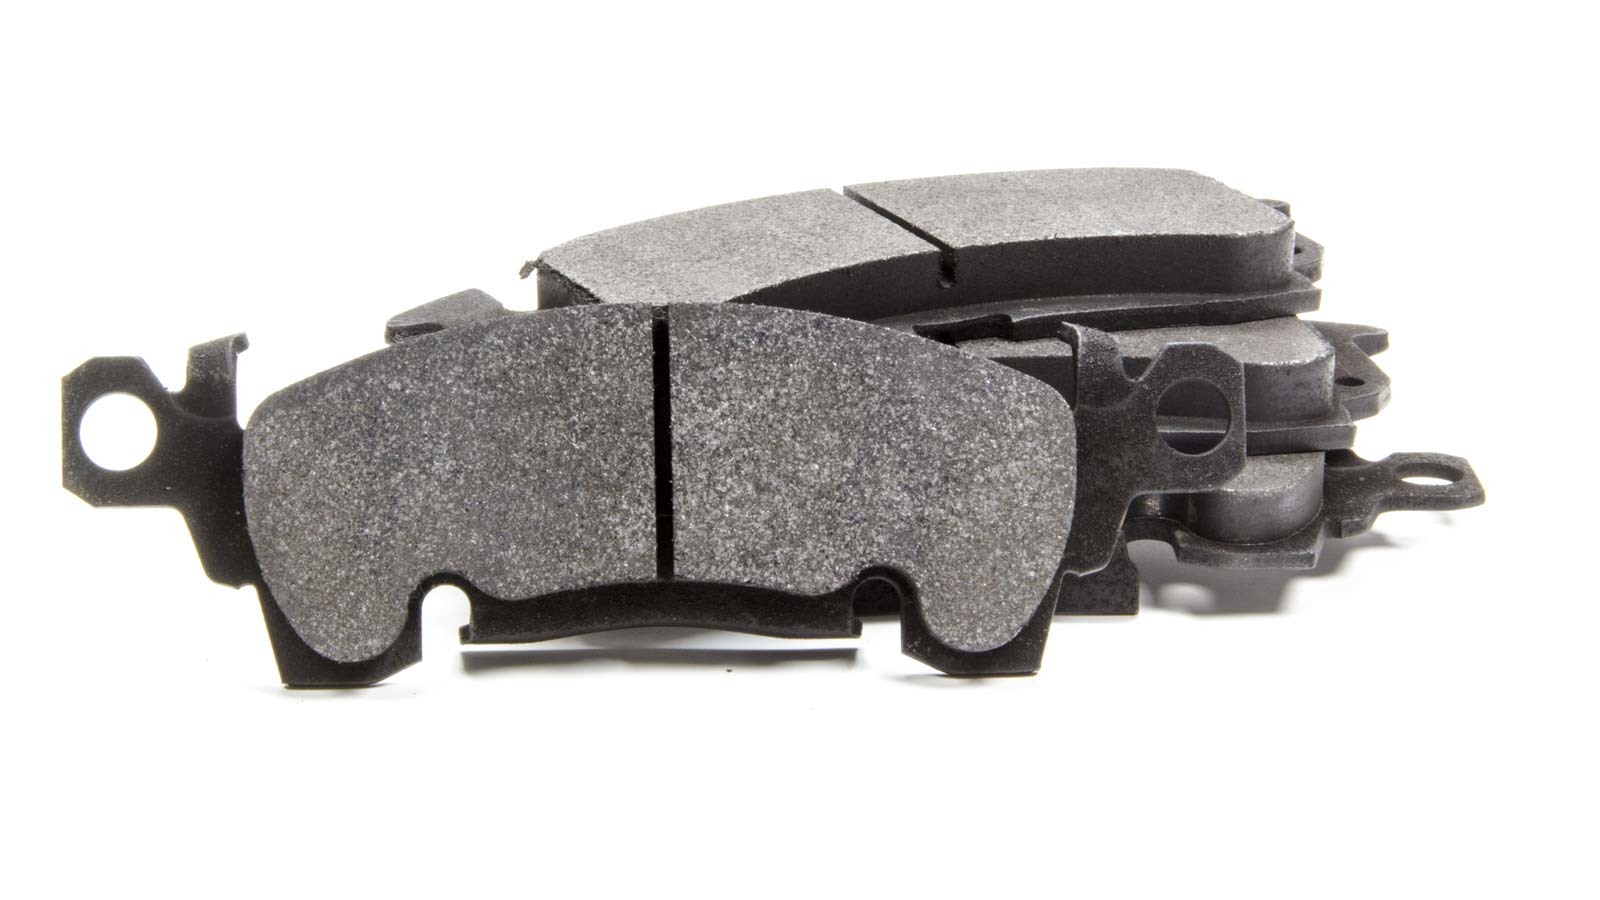 Performance Friction 0052-13-14-44 Brake Pads, 13 Compound, All Temperatures, GM Fullsize Calipers, Set of 4